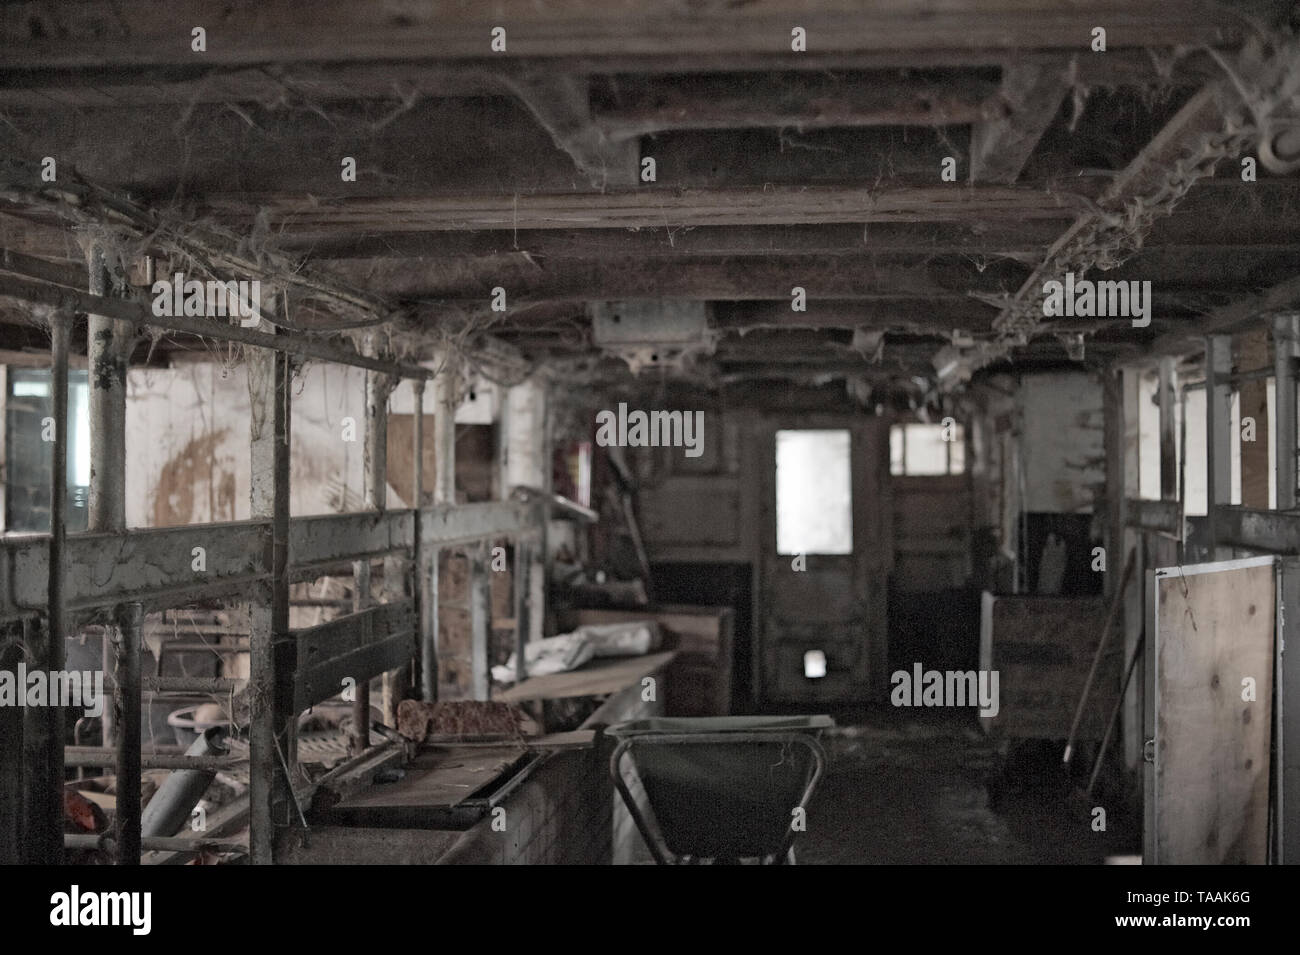 Interior of a farm with shattered windows and broken things everywhere. A place that has seen better days - Stock Image